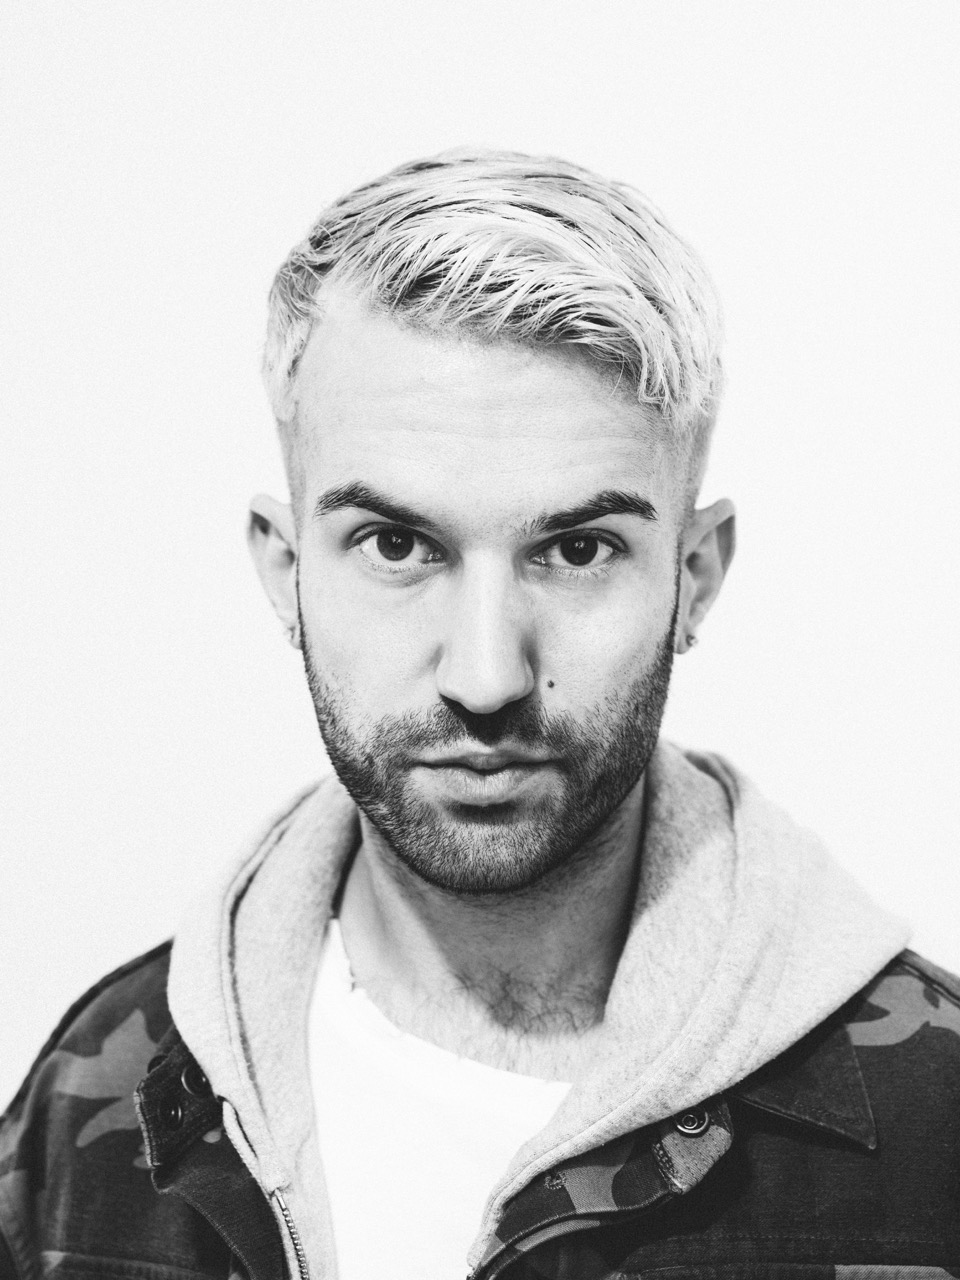 DJ A-Trak headlines the event! Fame15 Creative and El Gallo hosting Crosstown Cookout in Pittsburgh, Pennsylvania August 12, 2018 at the Mon Wharf.